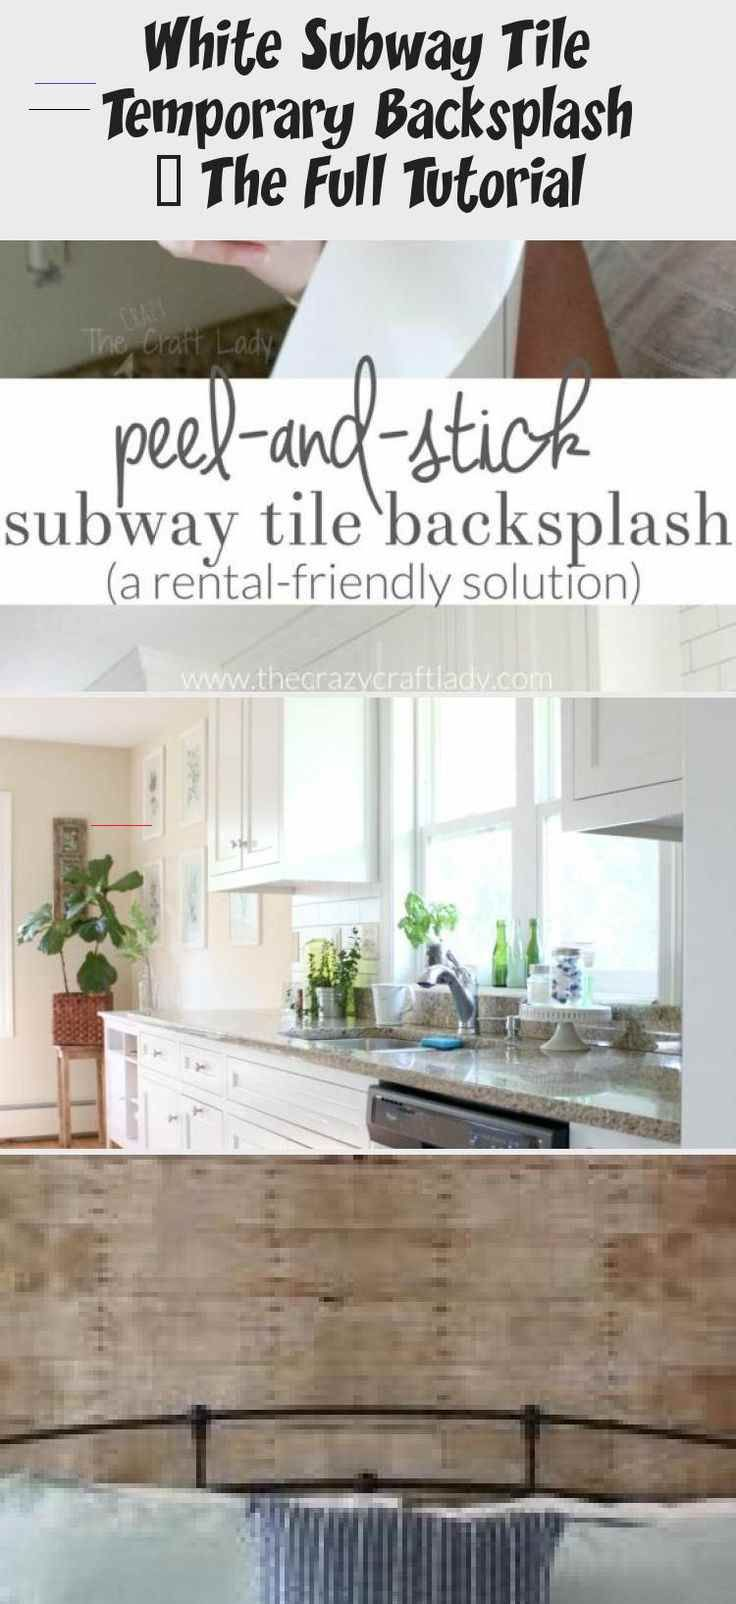 White Subway Tile Temporary Backsplash The Full Tutorial Interior Design Renter S Best Friend Temporary Wallpaper How To Use Peel And Stick Wallpaper To